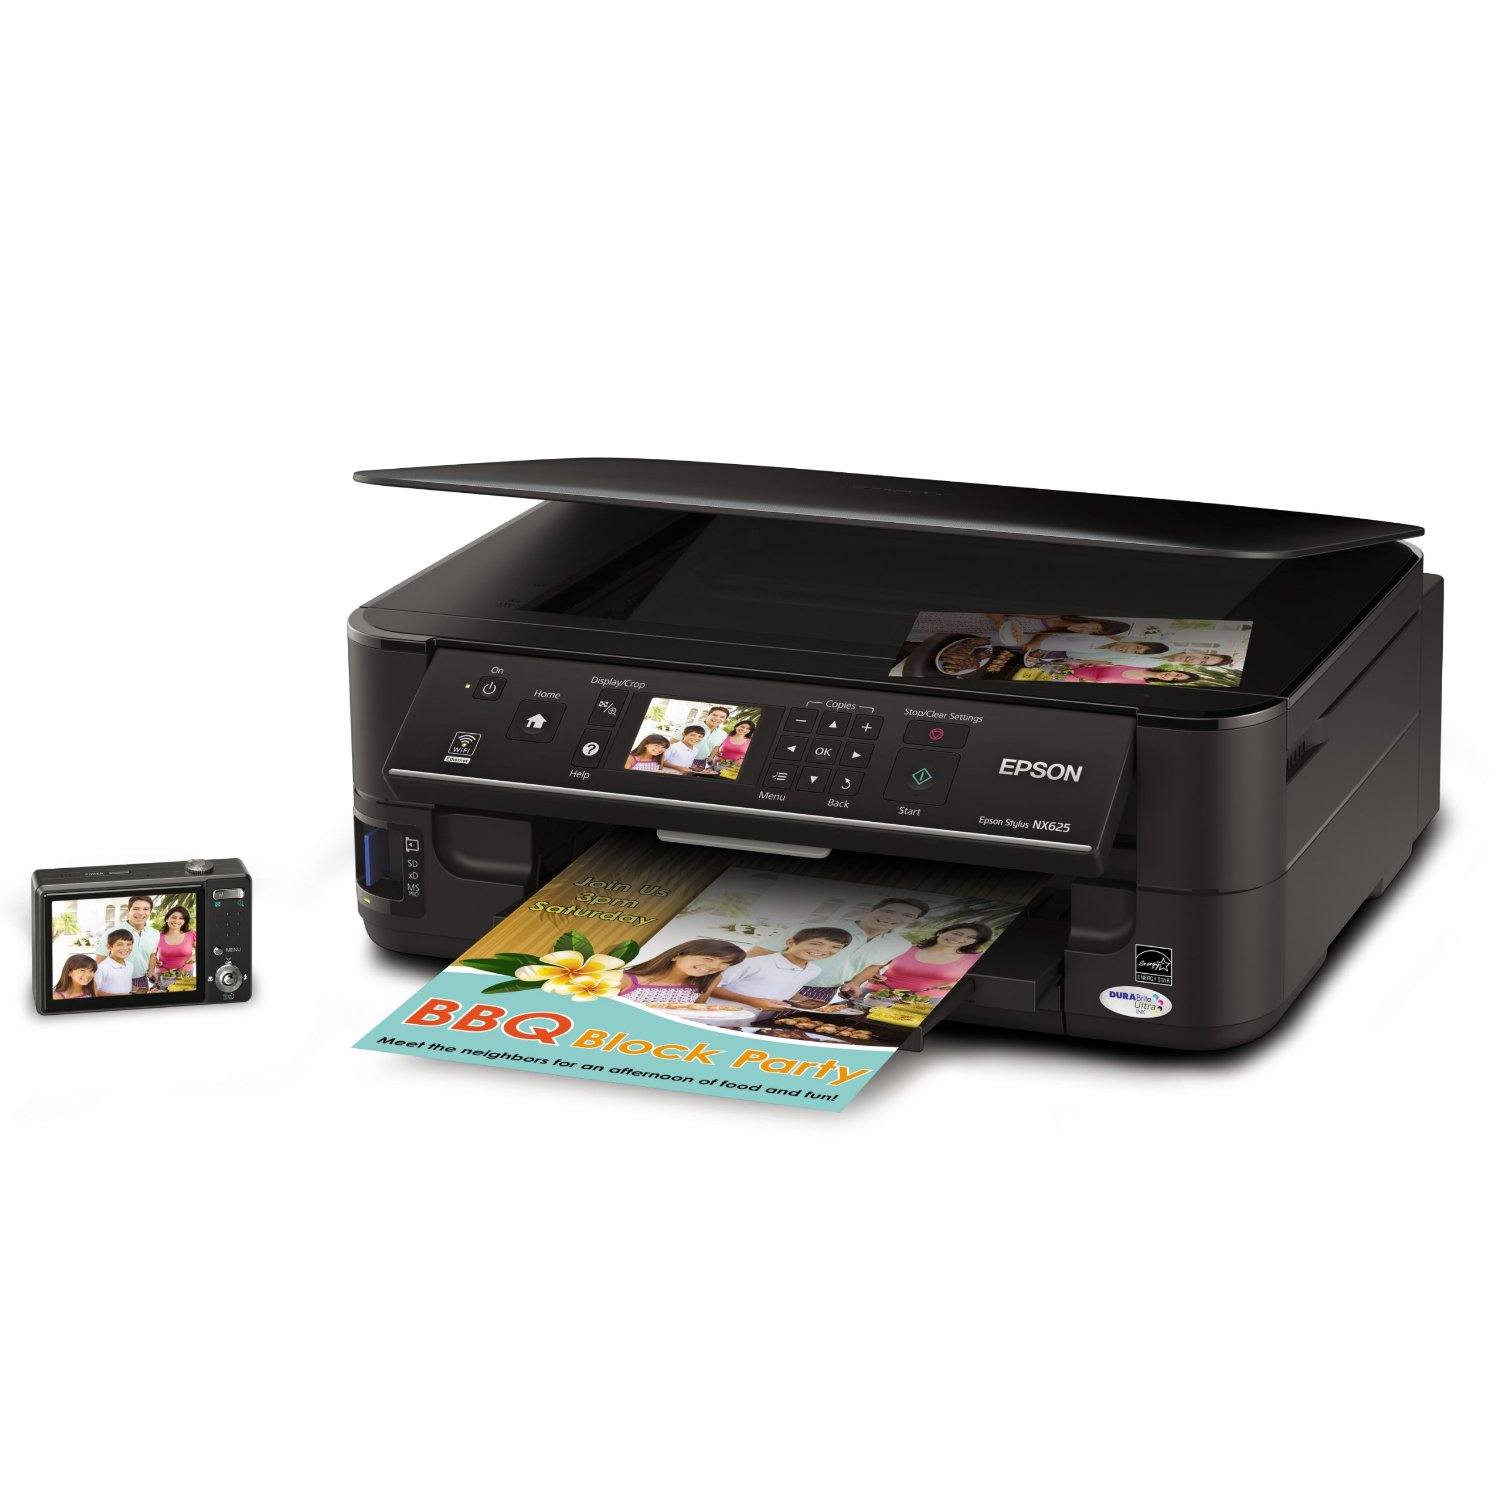 Which Printer Driver Do I Use With Epson Wf3640